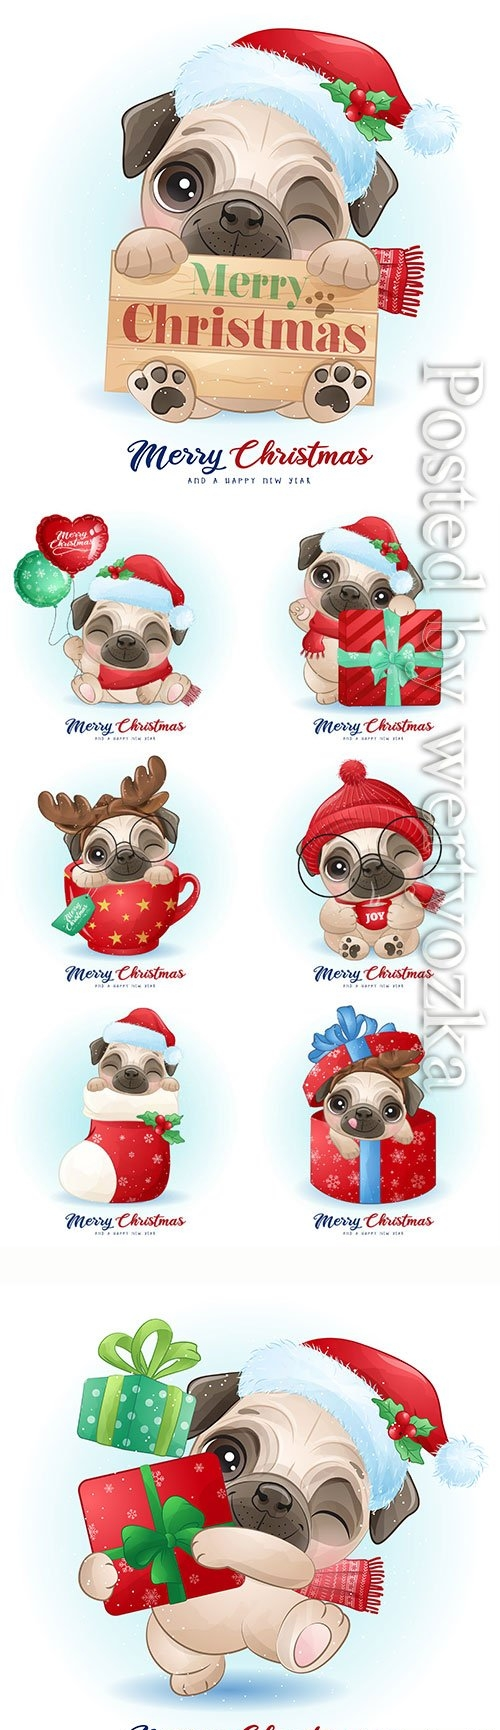 Cute doodle pug for christmas day with watercolor vector illustration